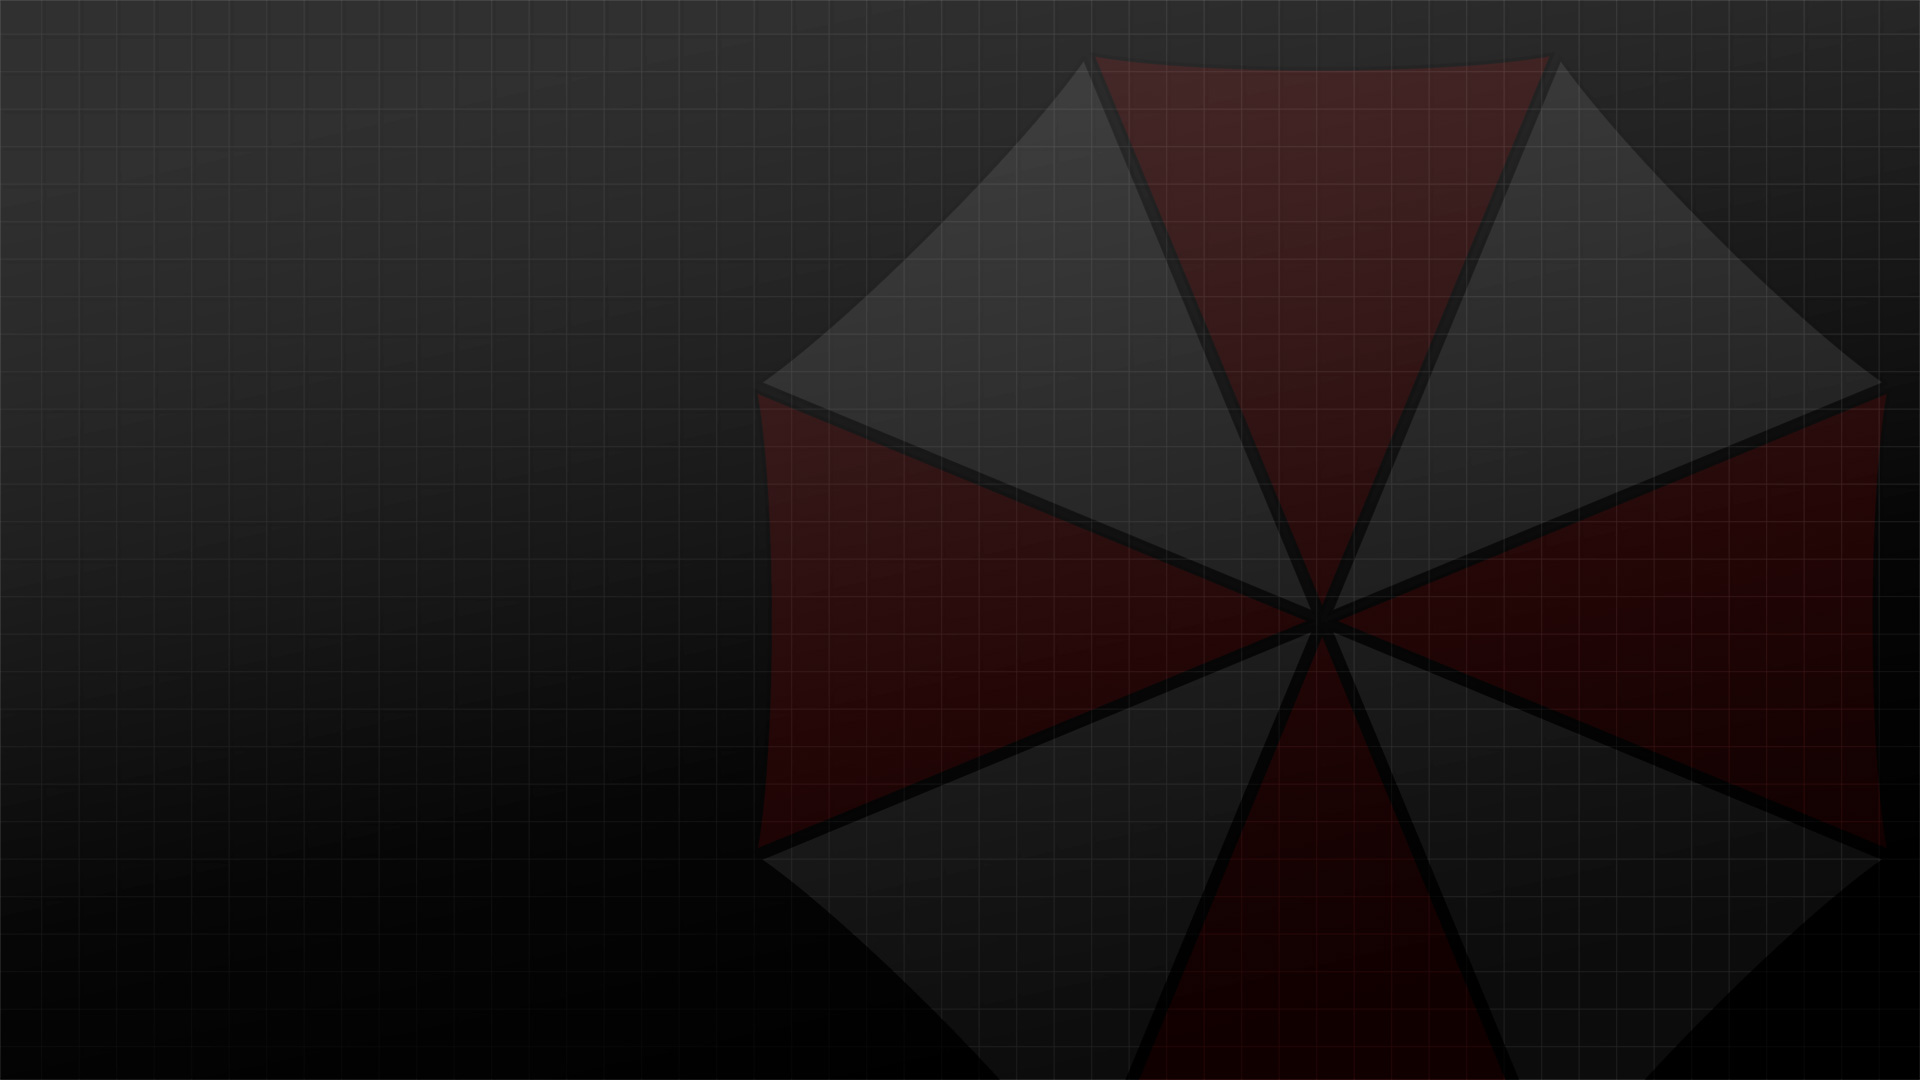 Video games movies resident evil umbrella corp logos free video games movies resident evil umbrella corp logos free wallpaper wallpaperjam voltagebd Images